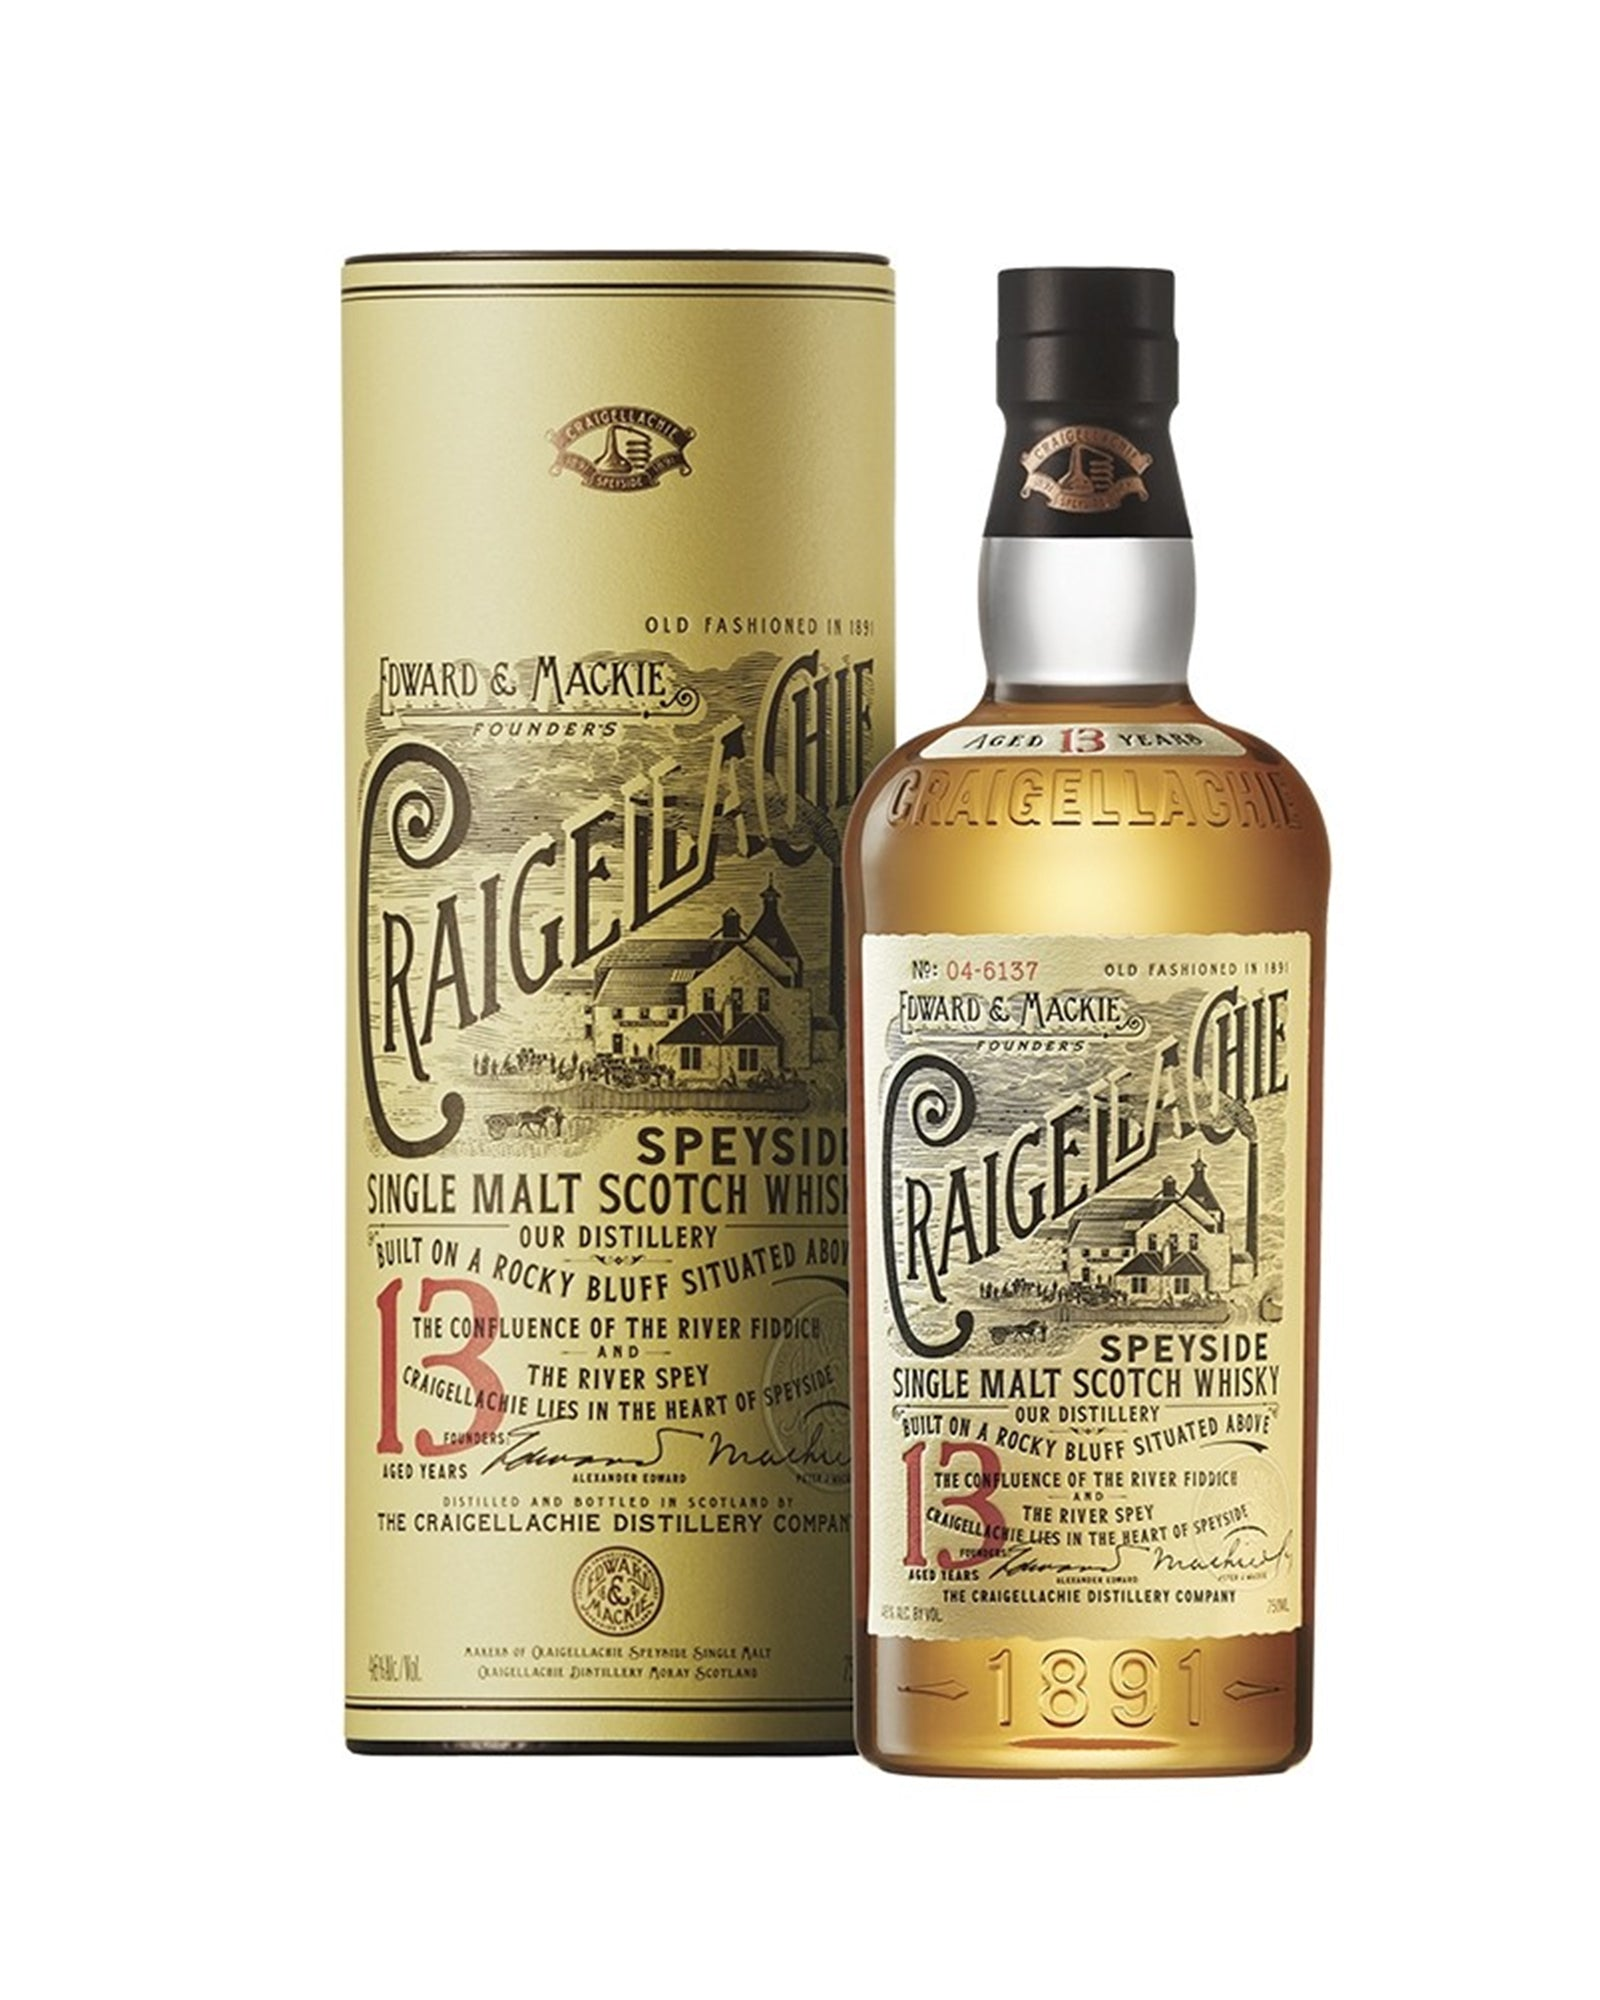 Scotch whisky single malt Craigellachie 13 ans d'age 70cl